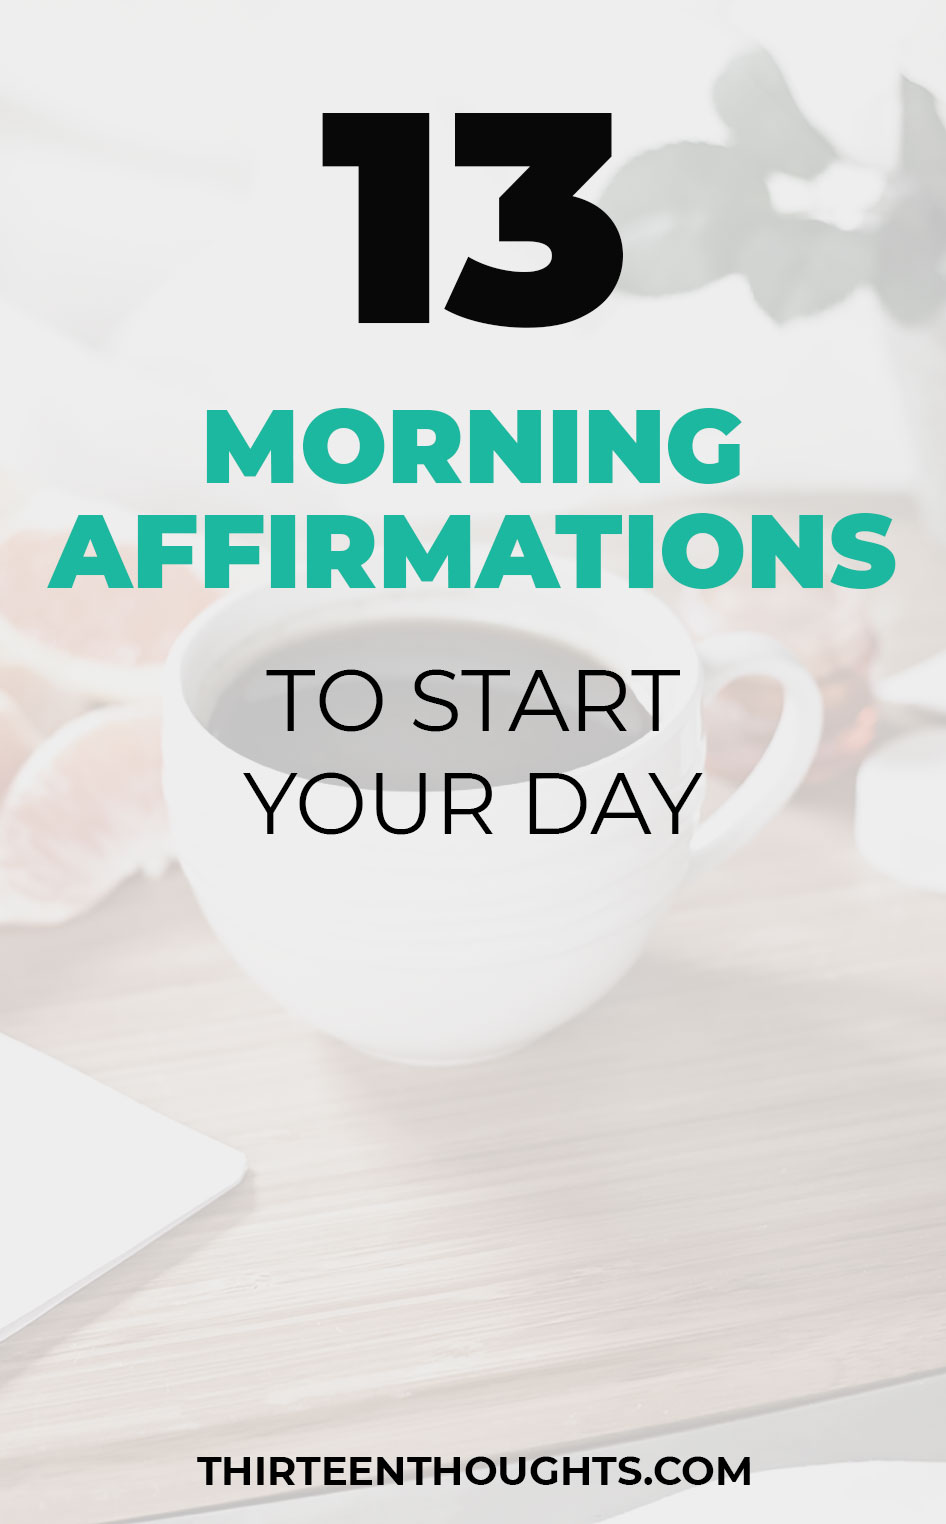 Morning Affirmations to Start Your Day